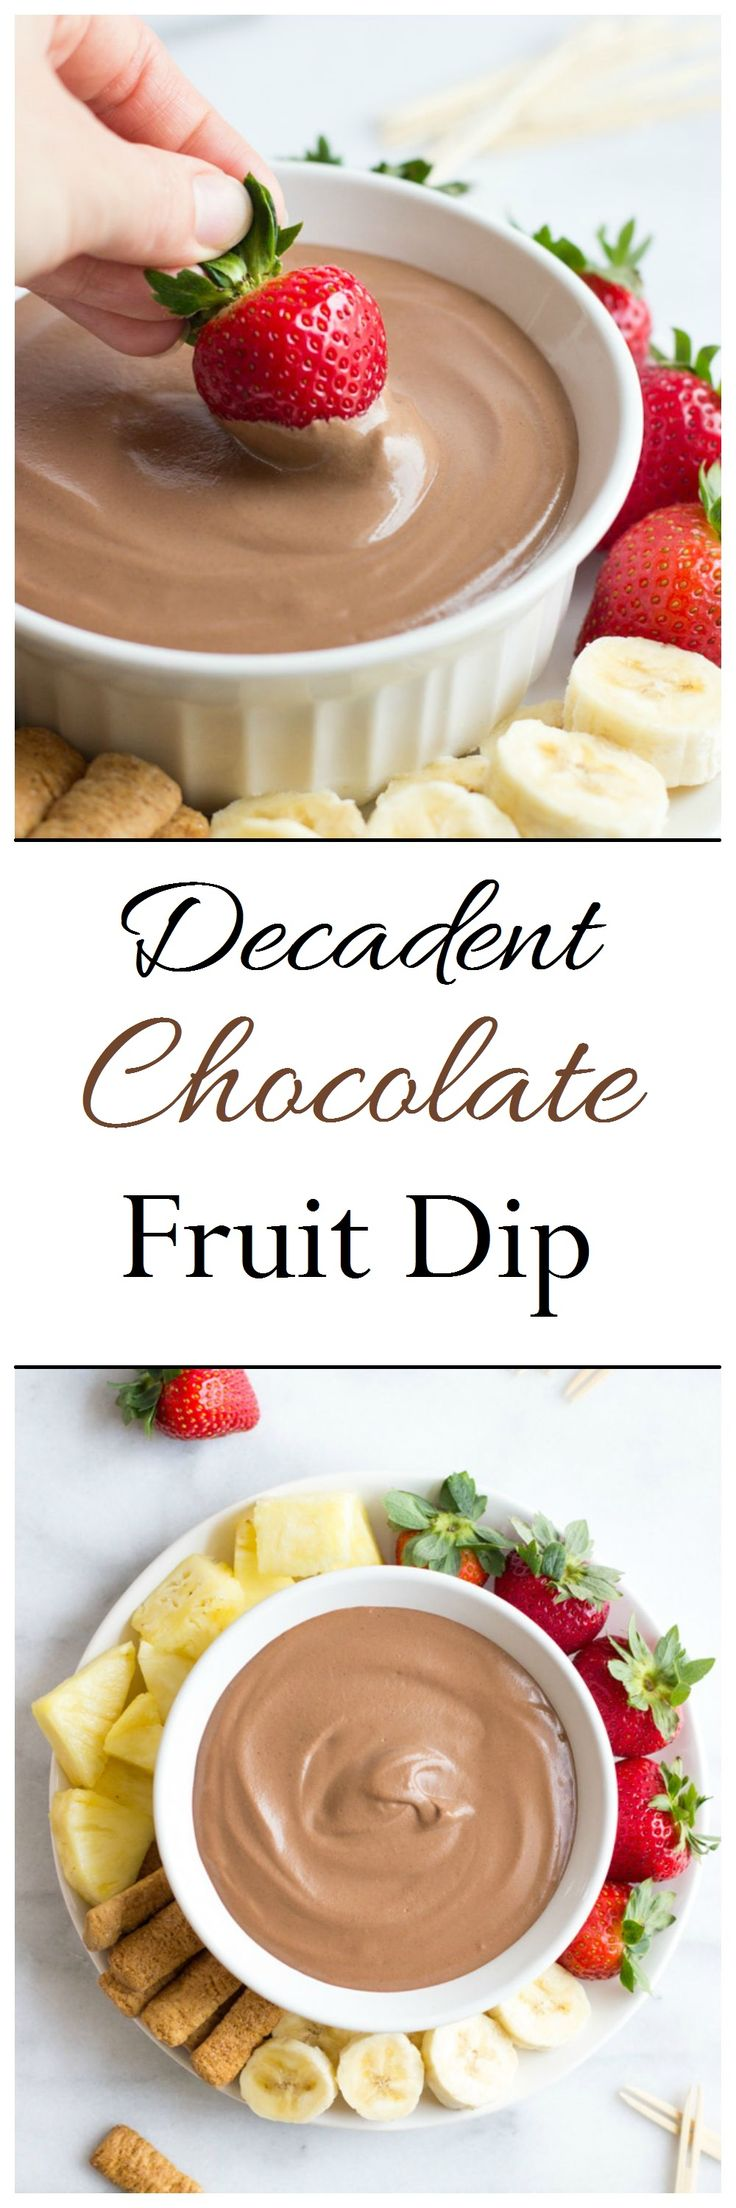 This recipe makes the lightest and silkiest chocolate fruit dip you can find! You won't believe it's made without dairy or refined sugar! (vegan + gluten-free)